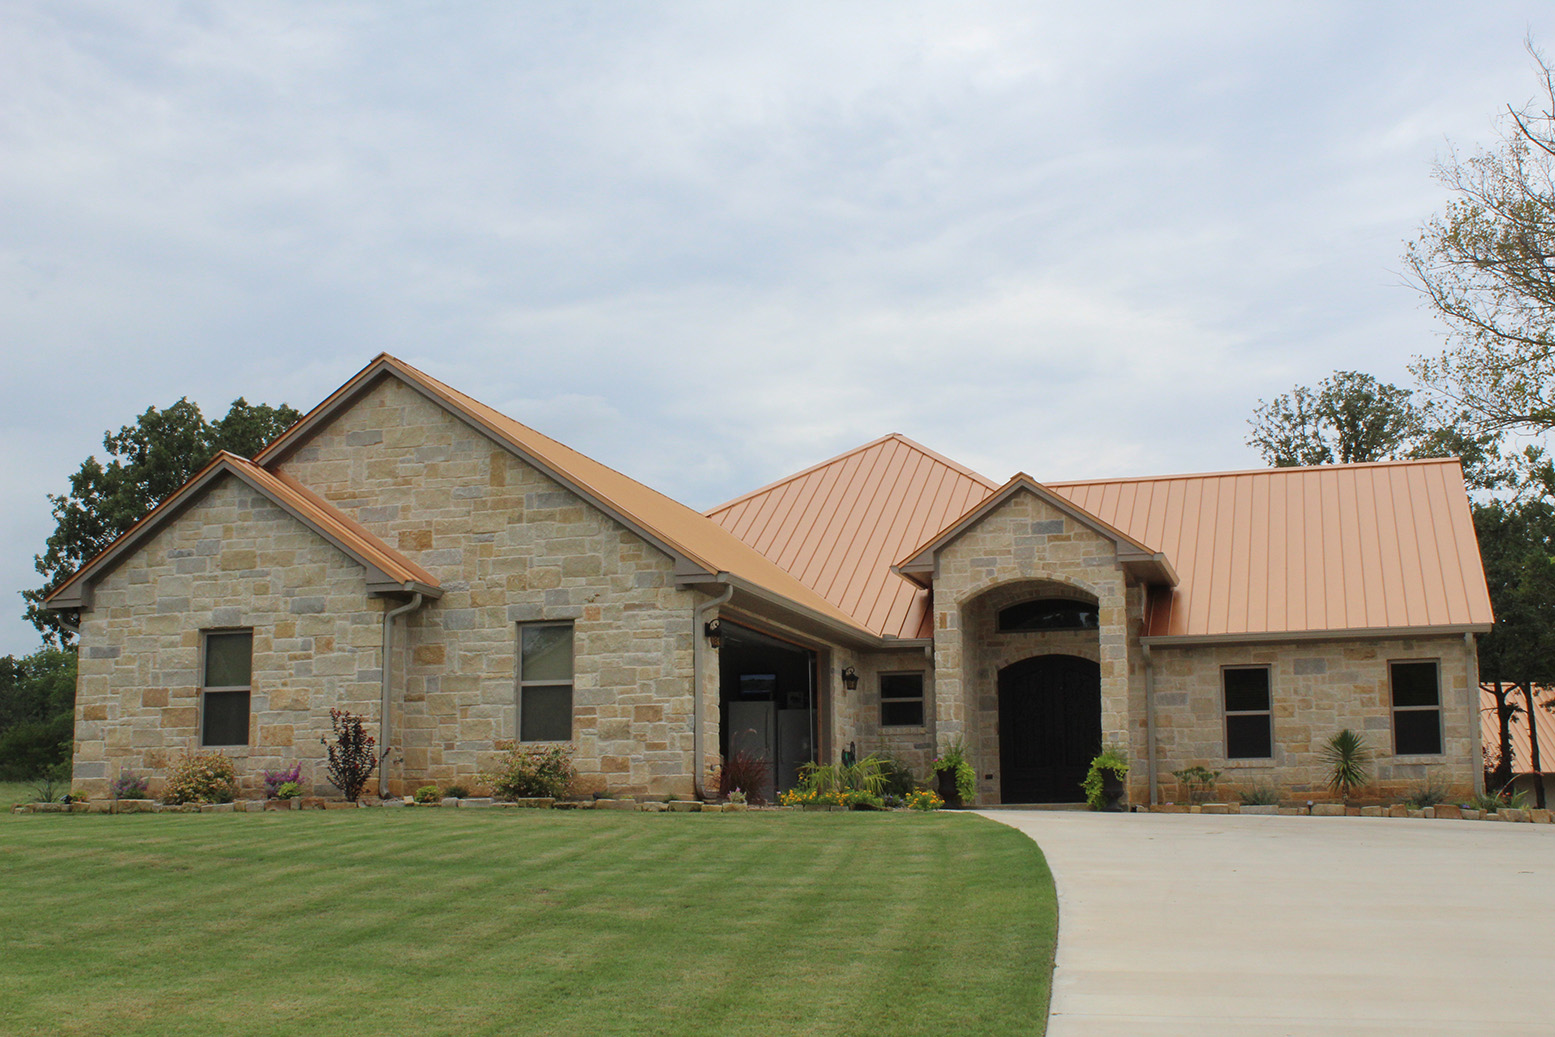 Custom Built Home By Charter Homes In Kingston, OK